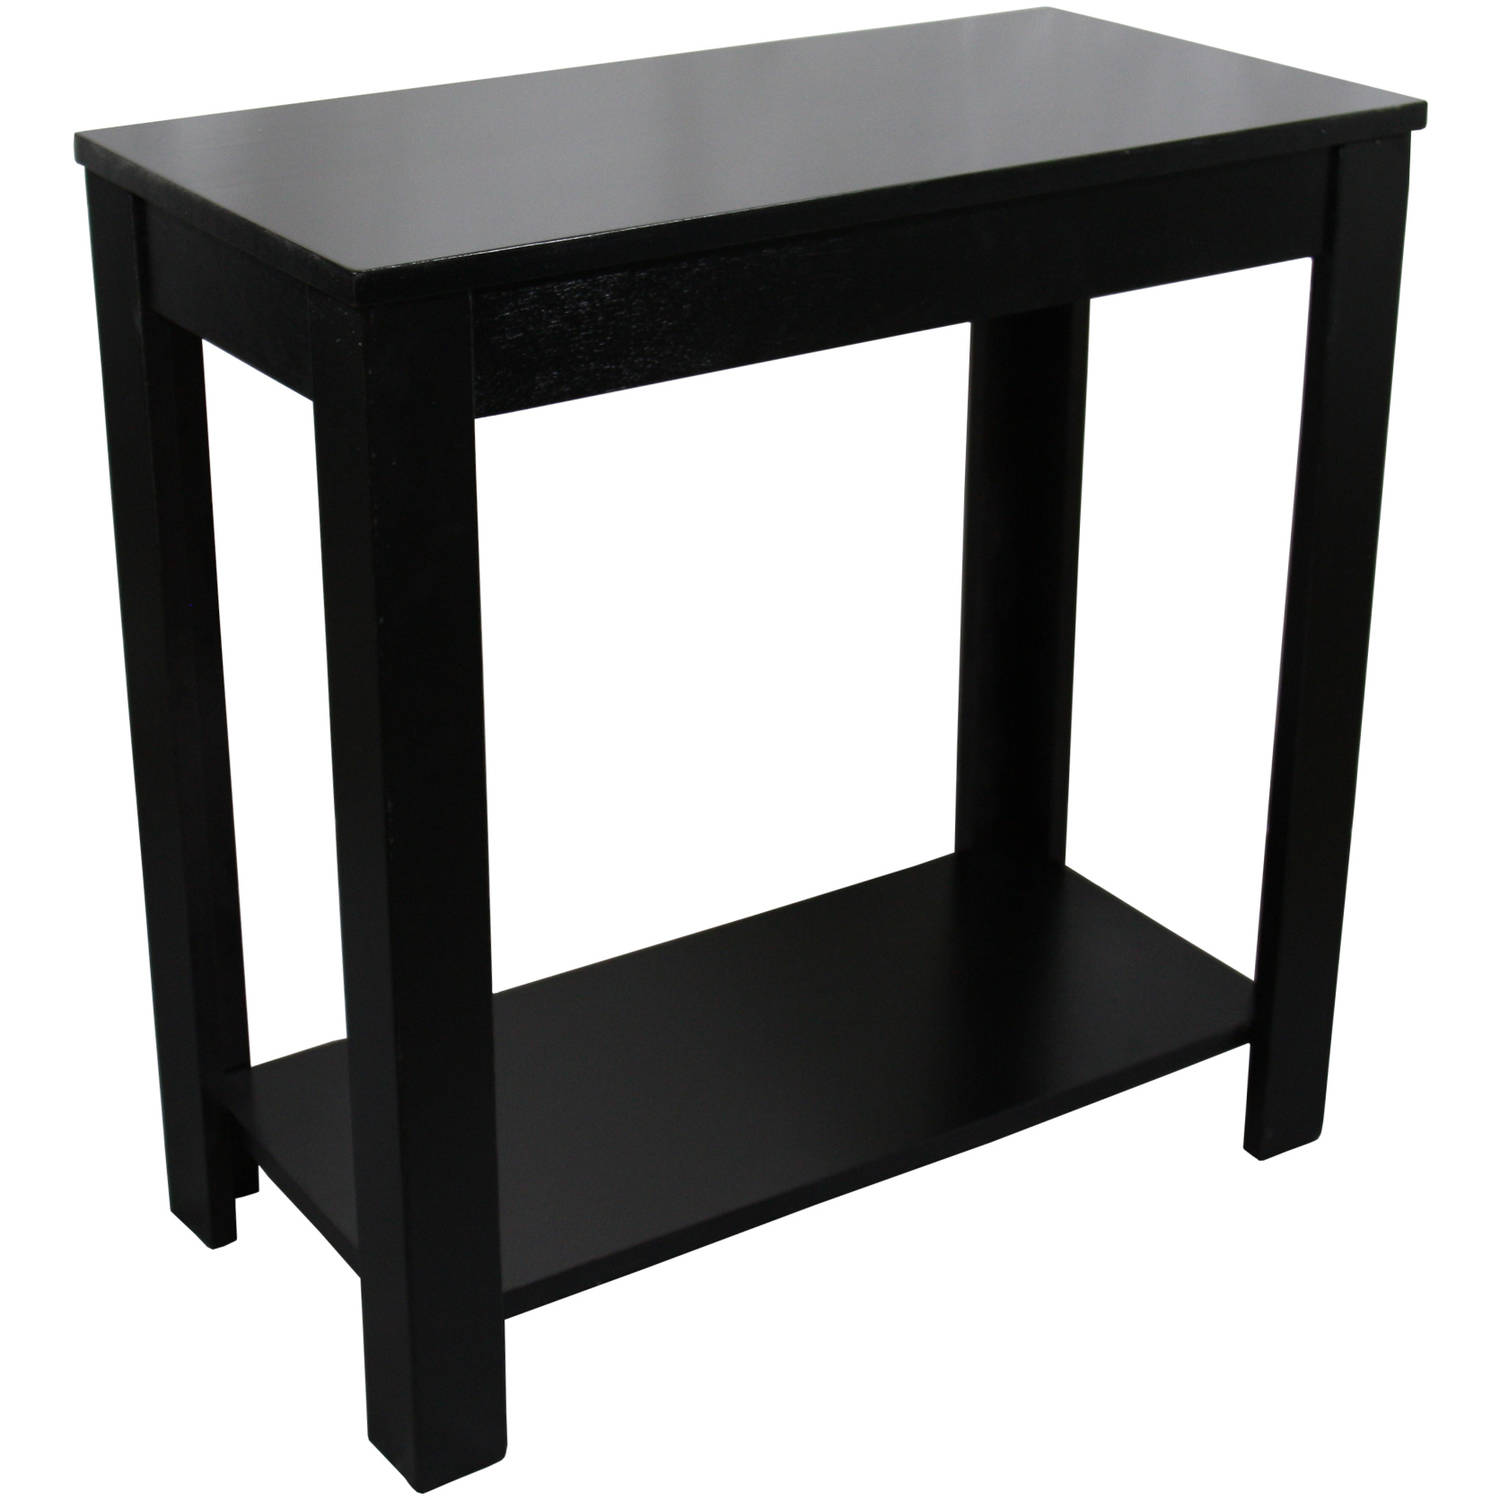 traditional dark cherry side end table wood tables and coffee big pet cage glass chrome nesting with slide out tray distressed console storage magnussen lakehurst south shore sofa